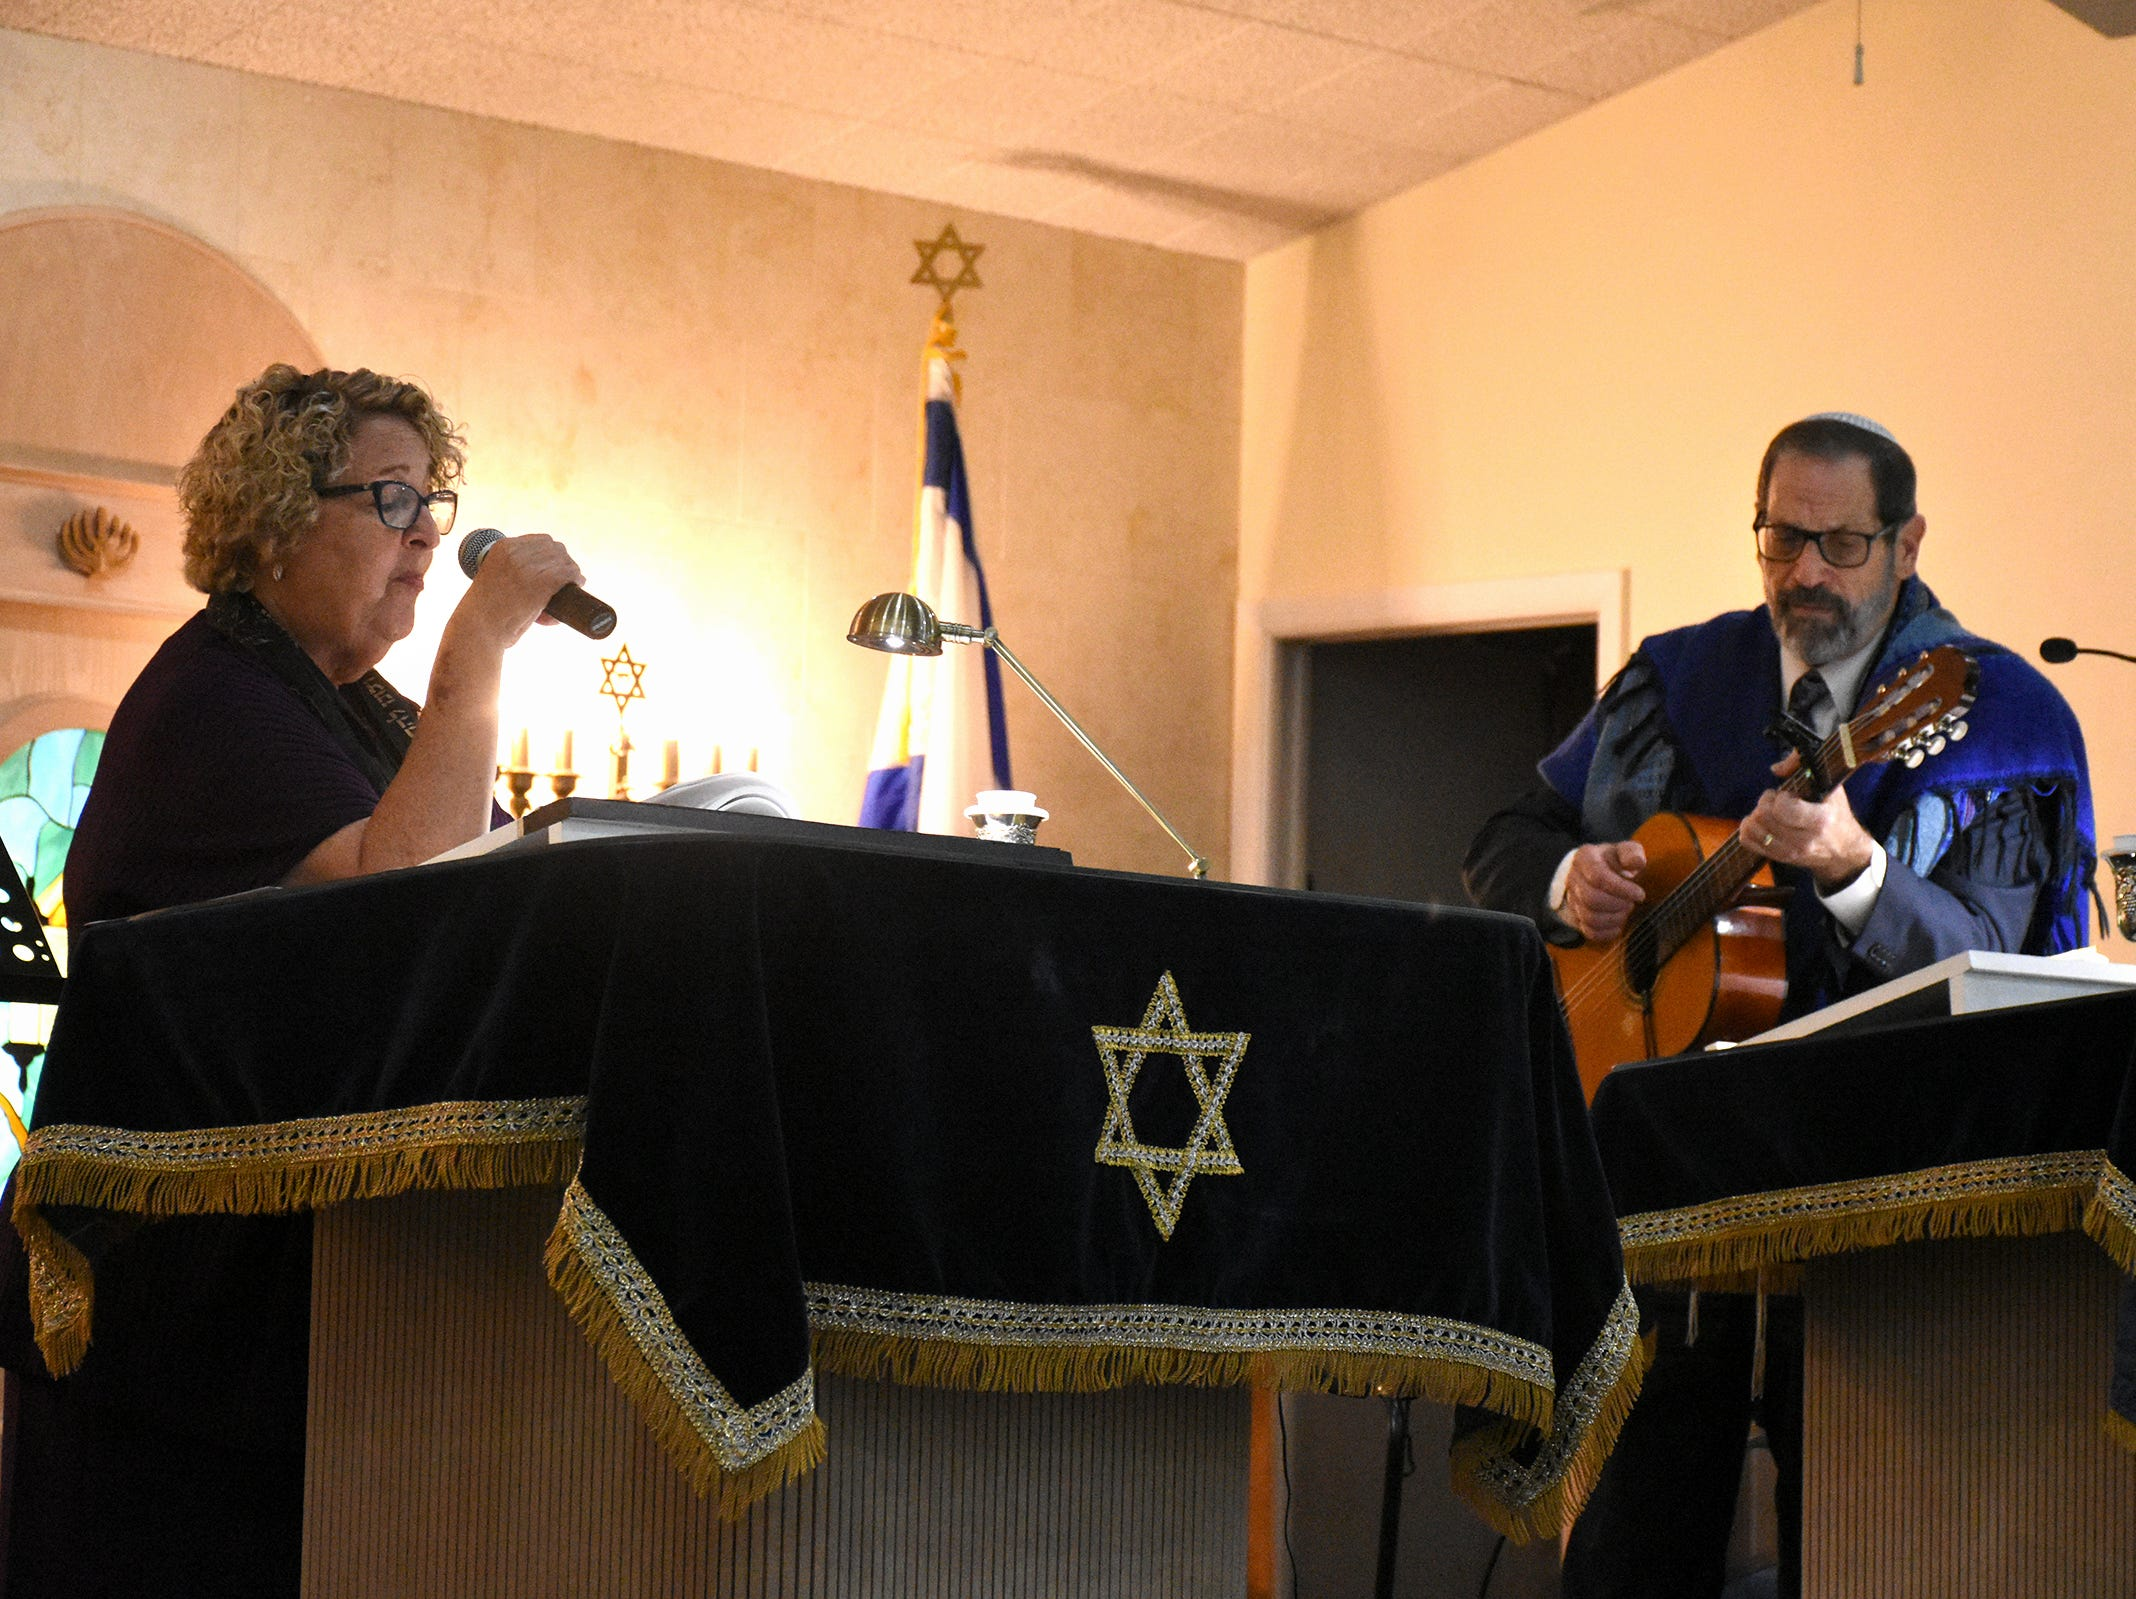 JCMI, Kristallnacht and the issues of the day